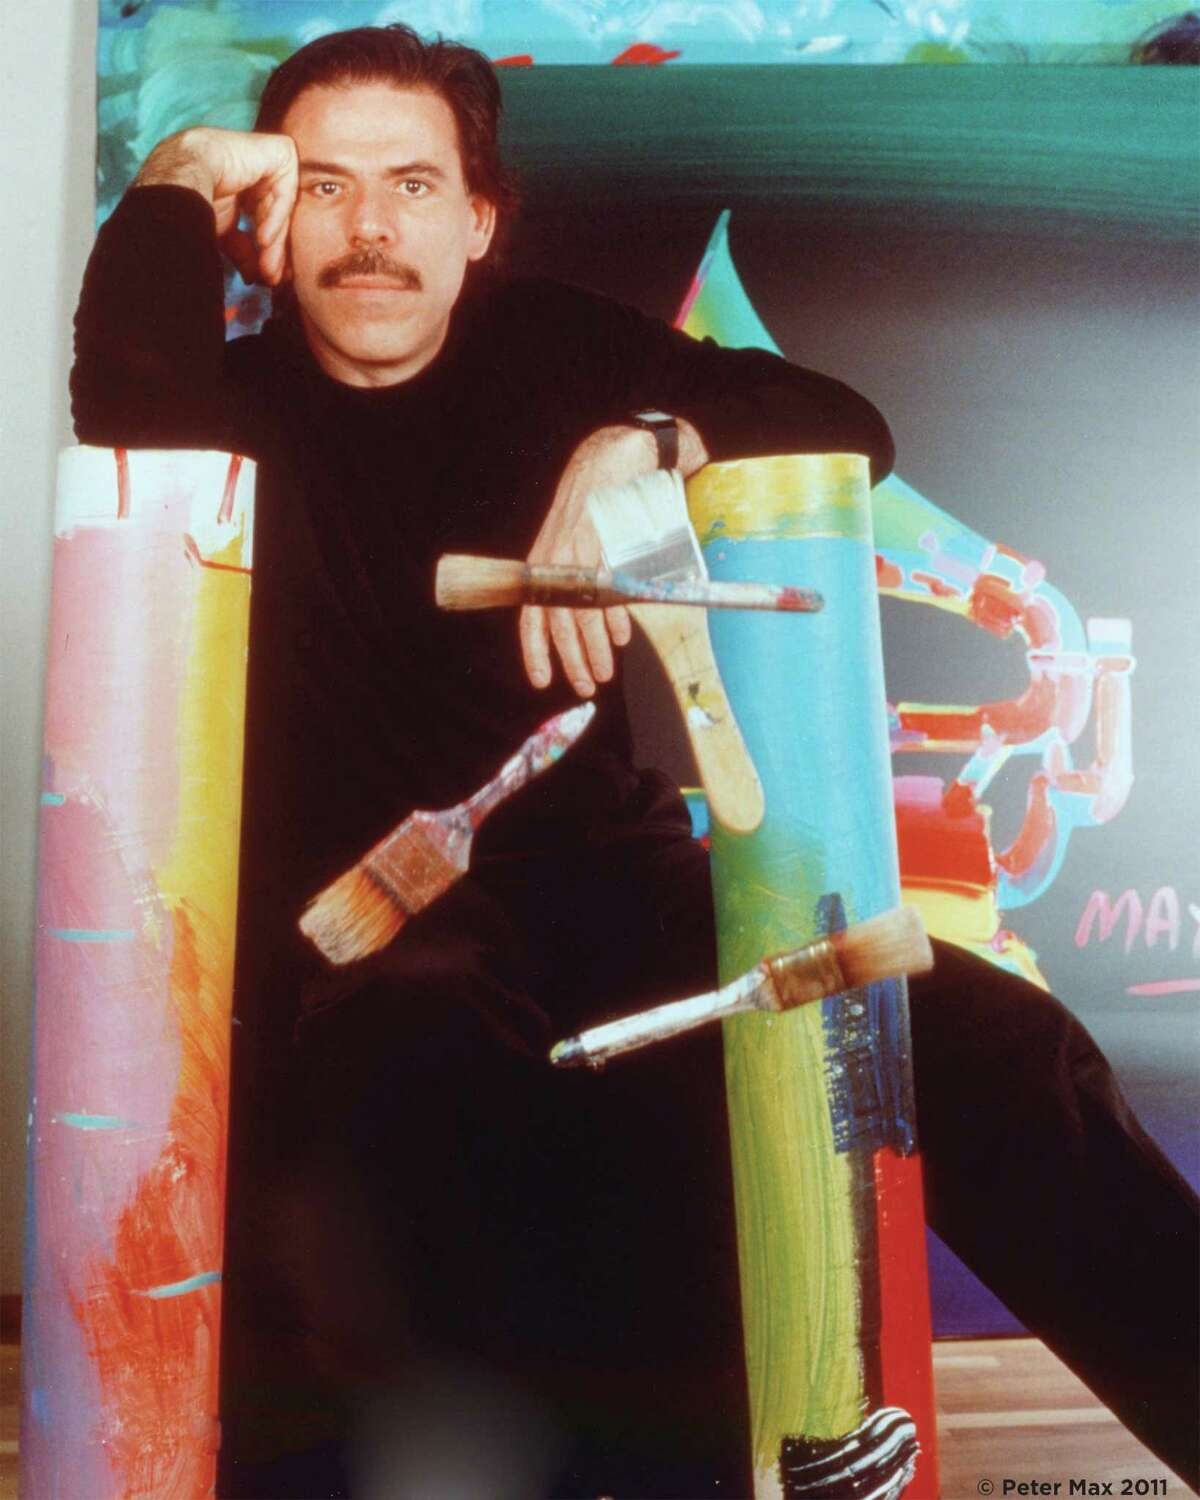 Legendary pop artist Peter Max will exhibit his work at the Geary Gallery in Darien Thursday, Sept. 6 through Sunday, Sept. 9.